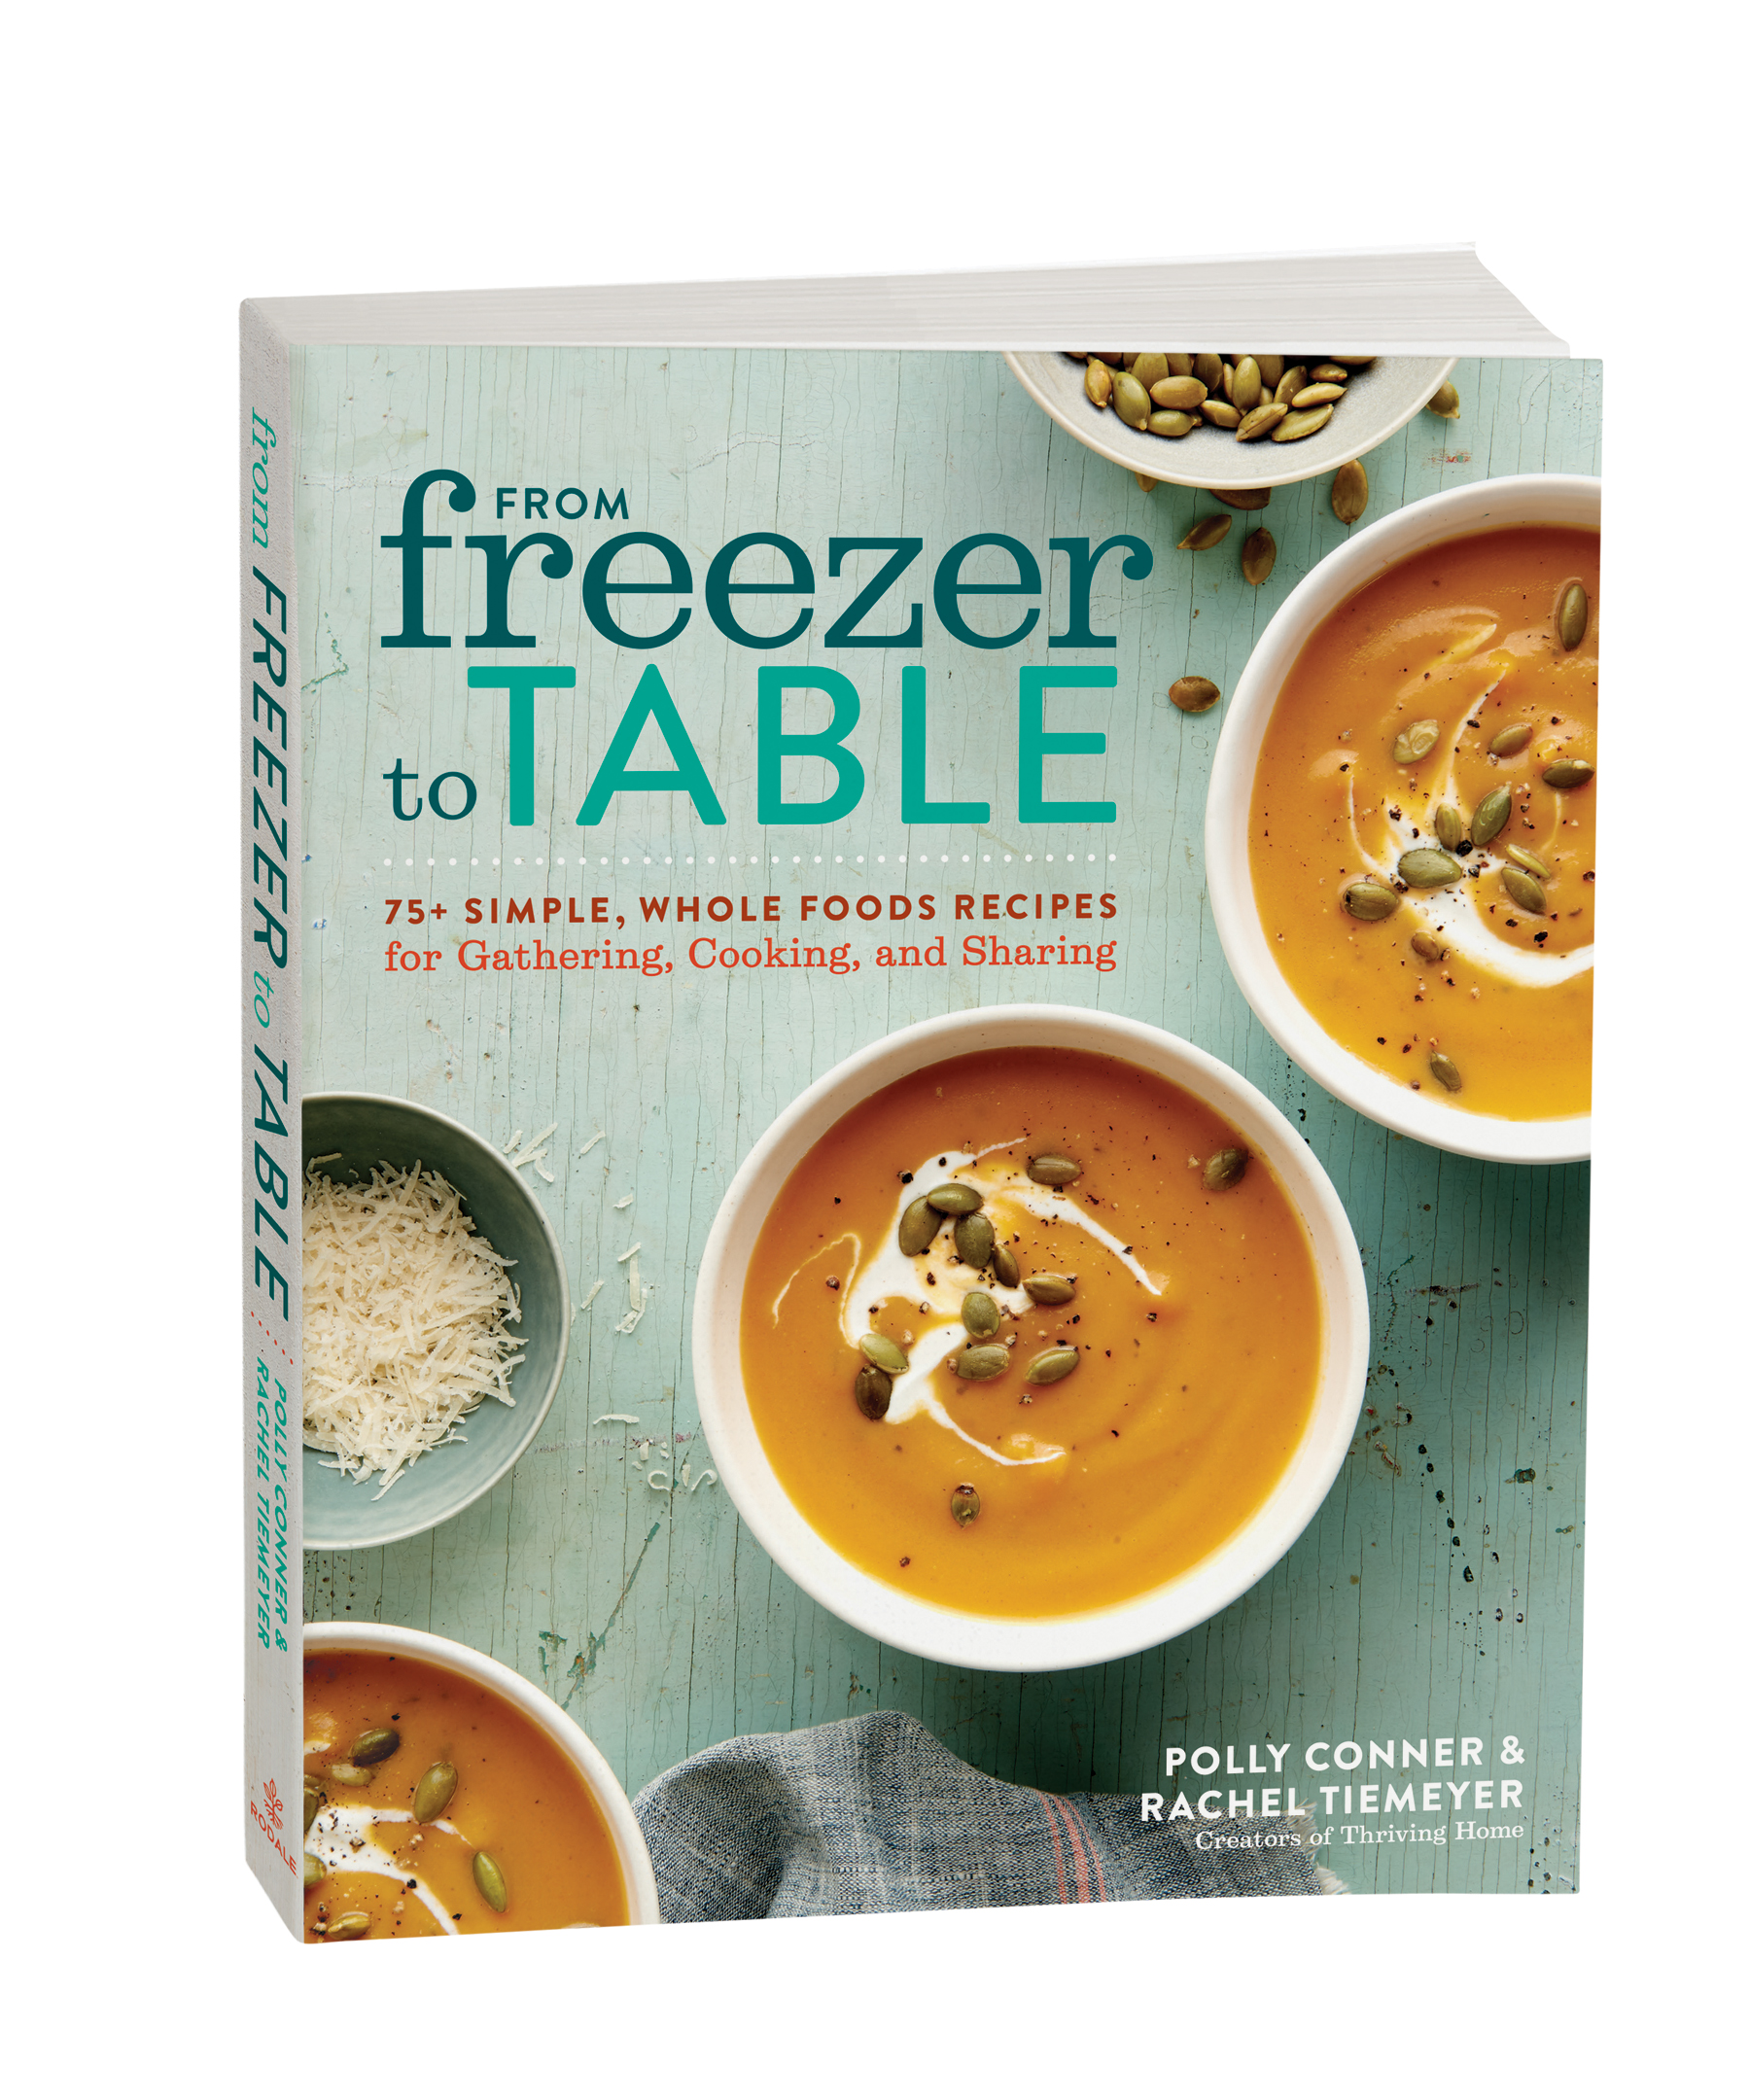 Learn to prepare delicious, healthy, stress-free meals for the family that go from freezer to table in no time!